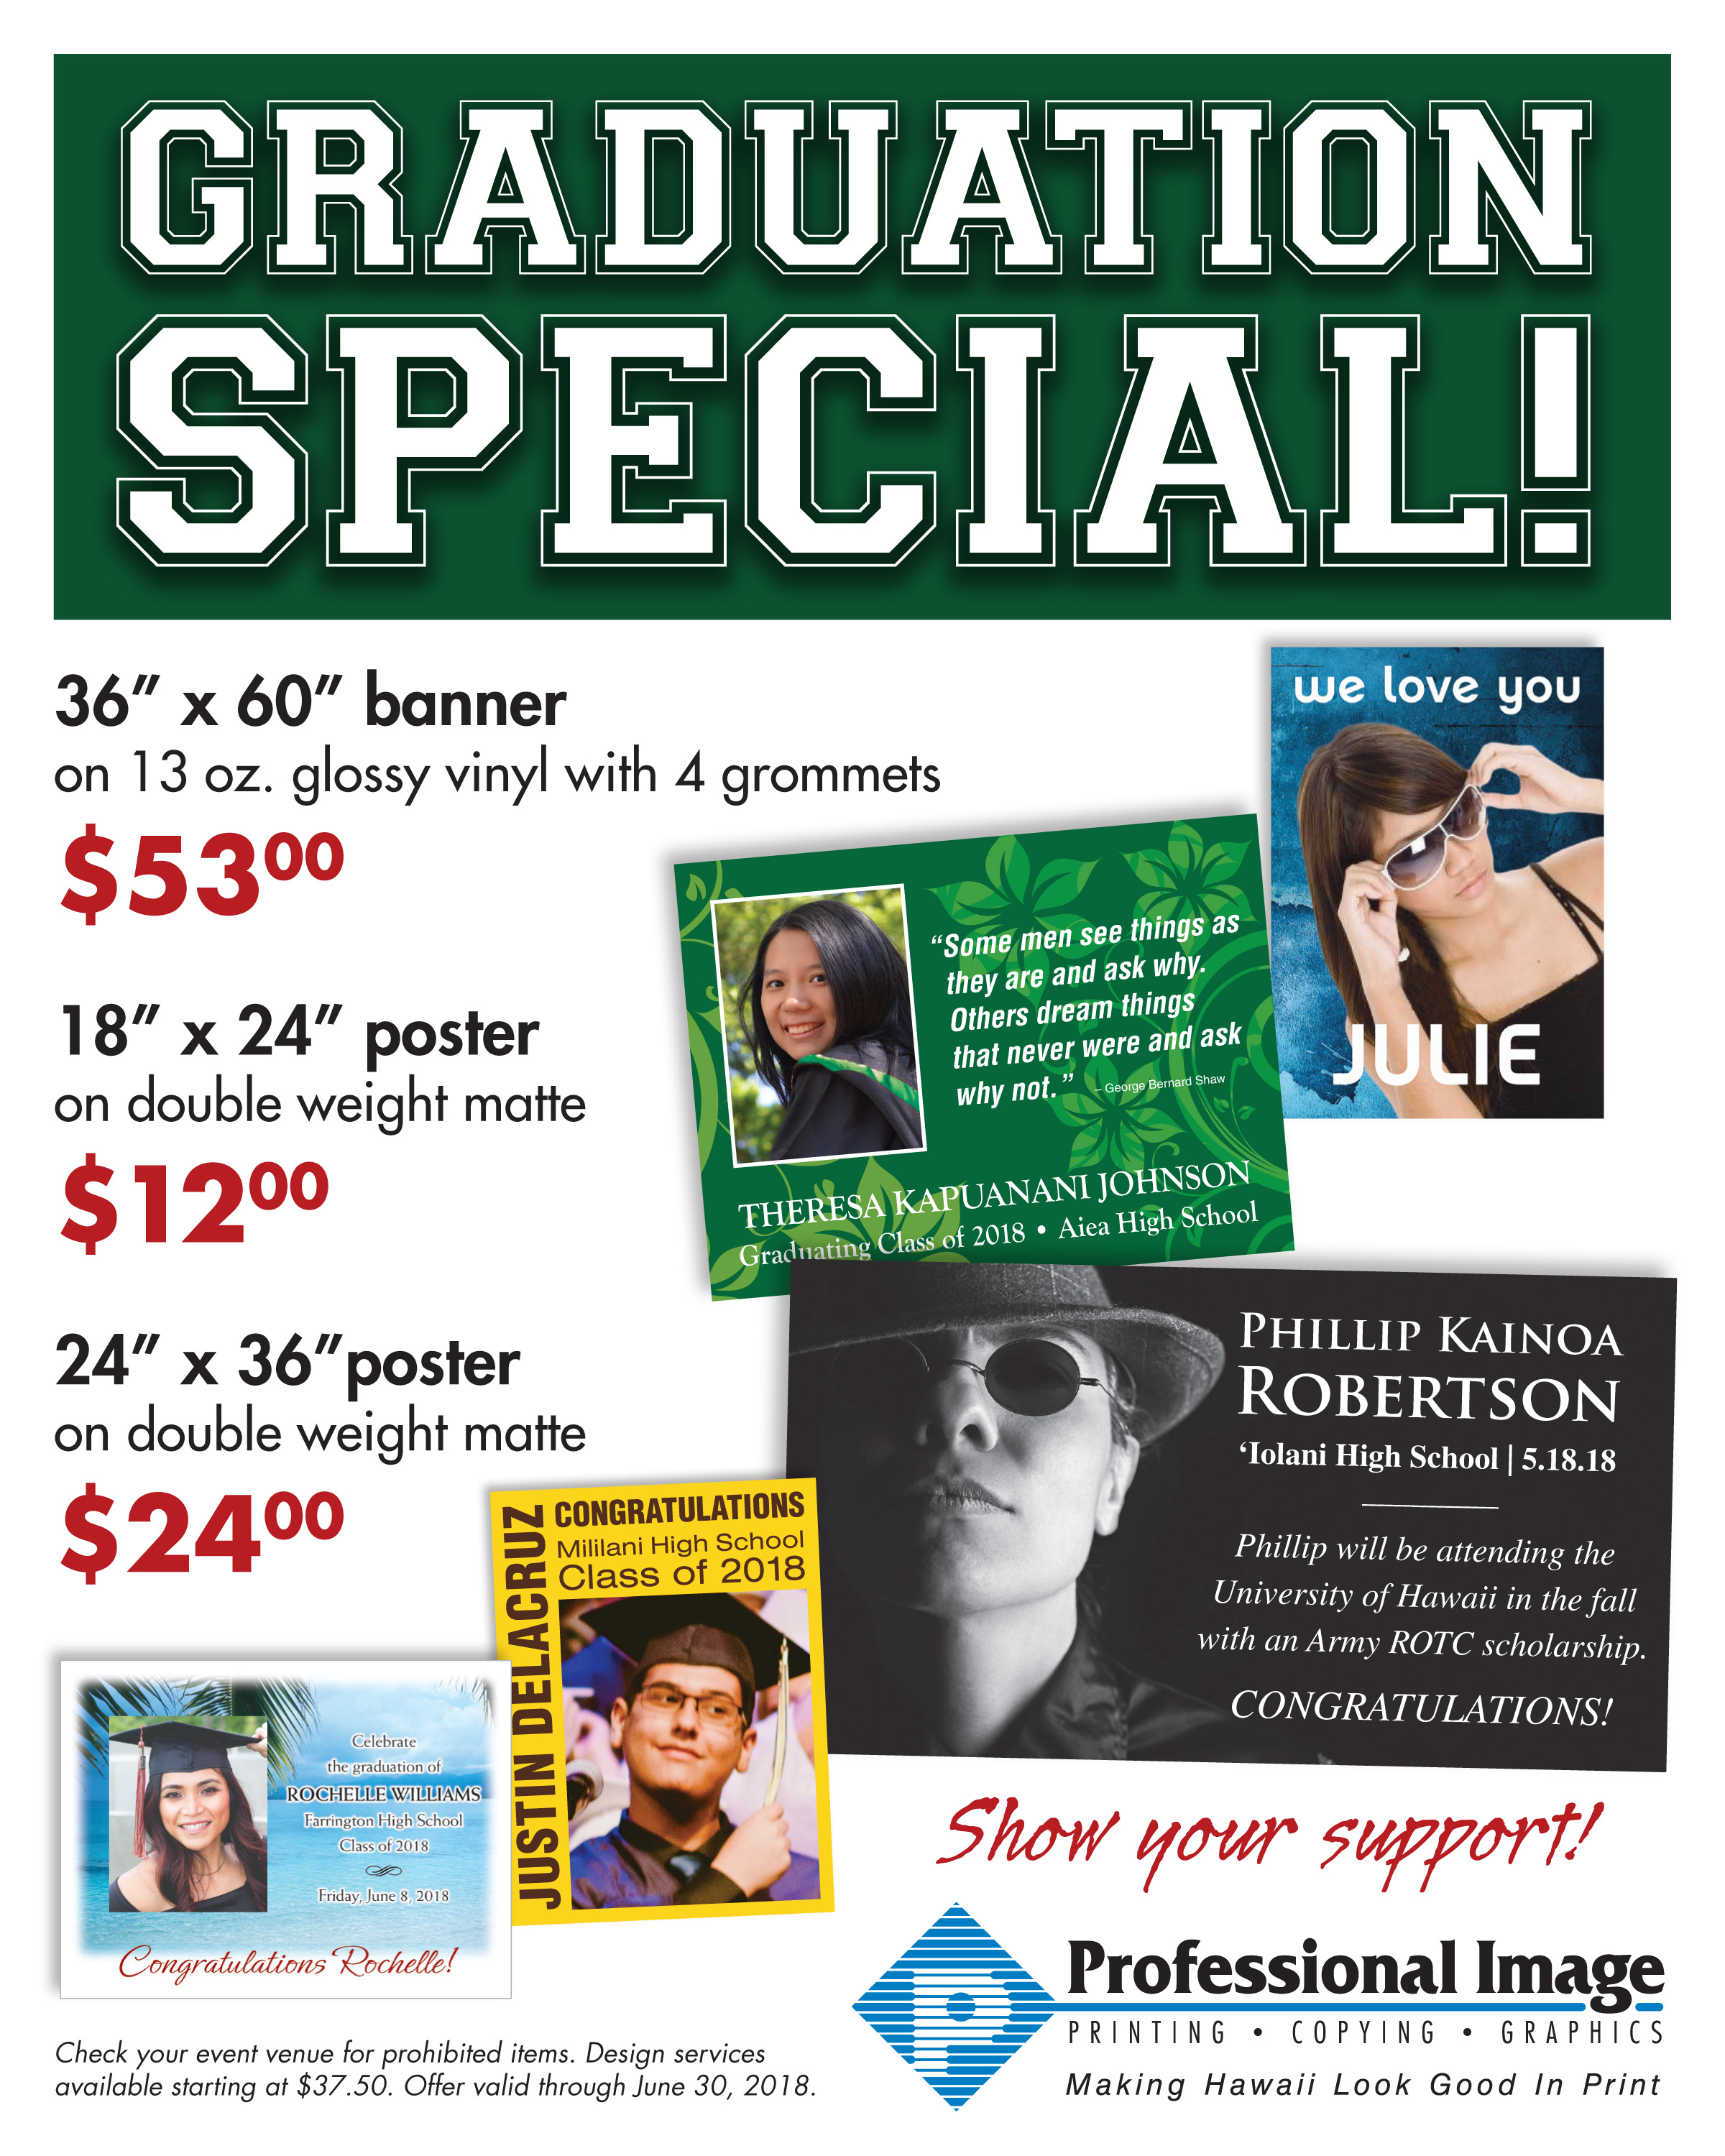 save on graduation banners and posters until june 30th